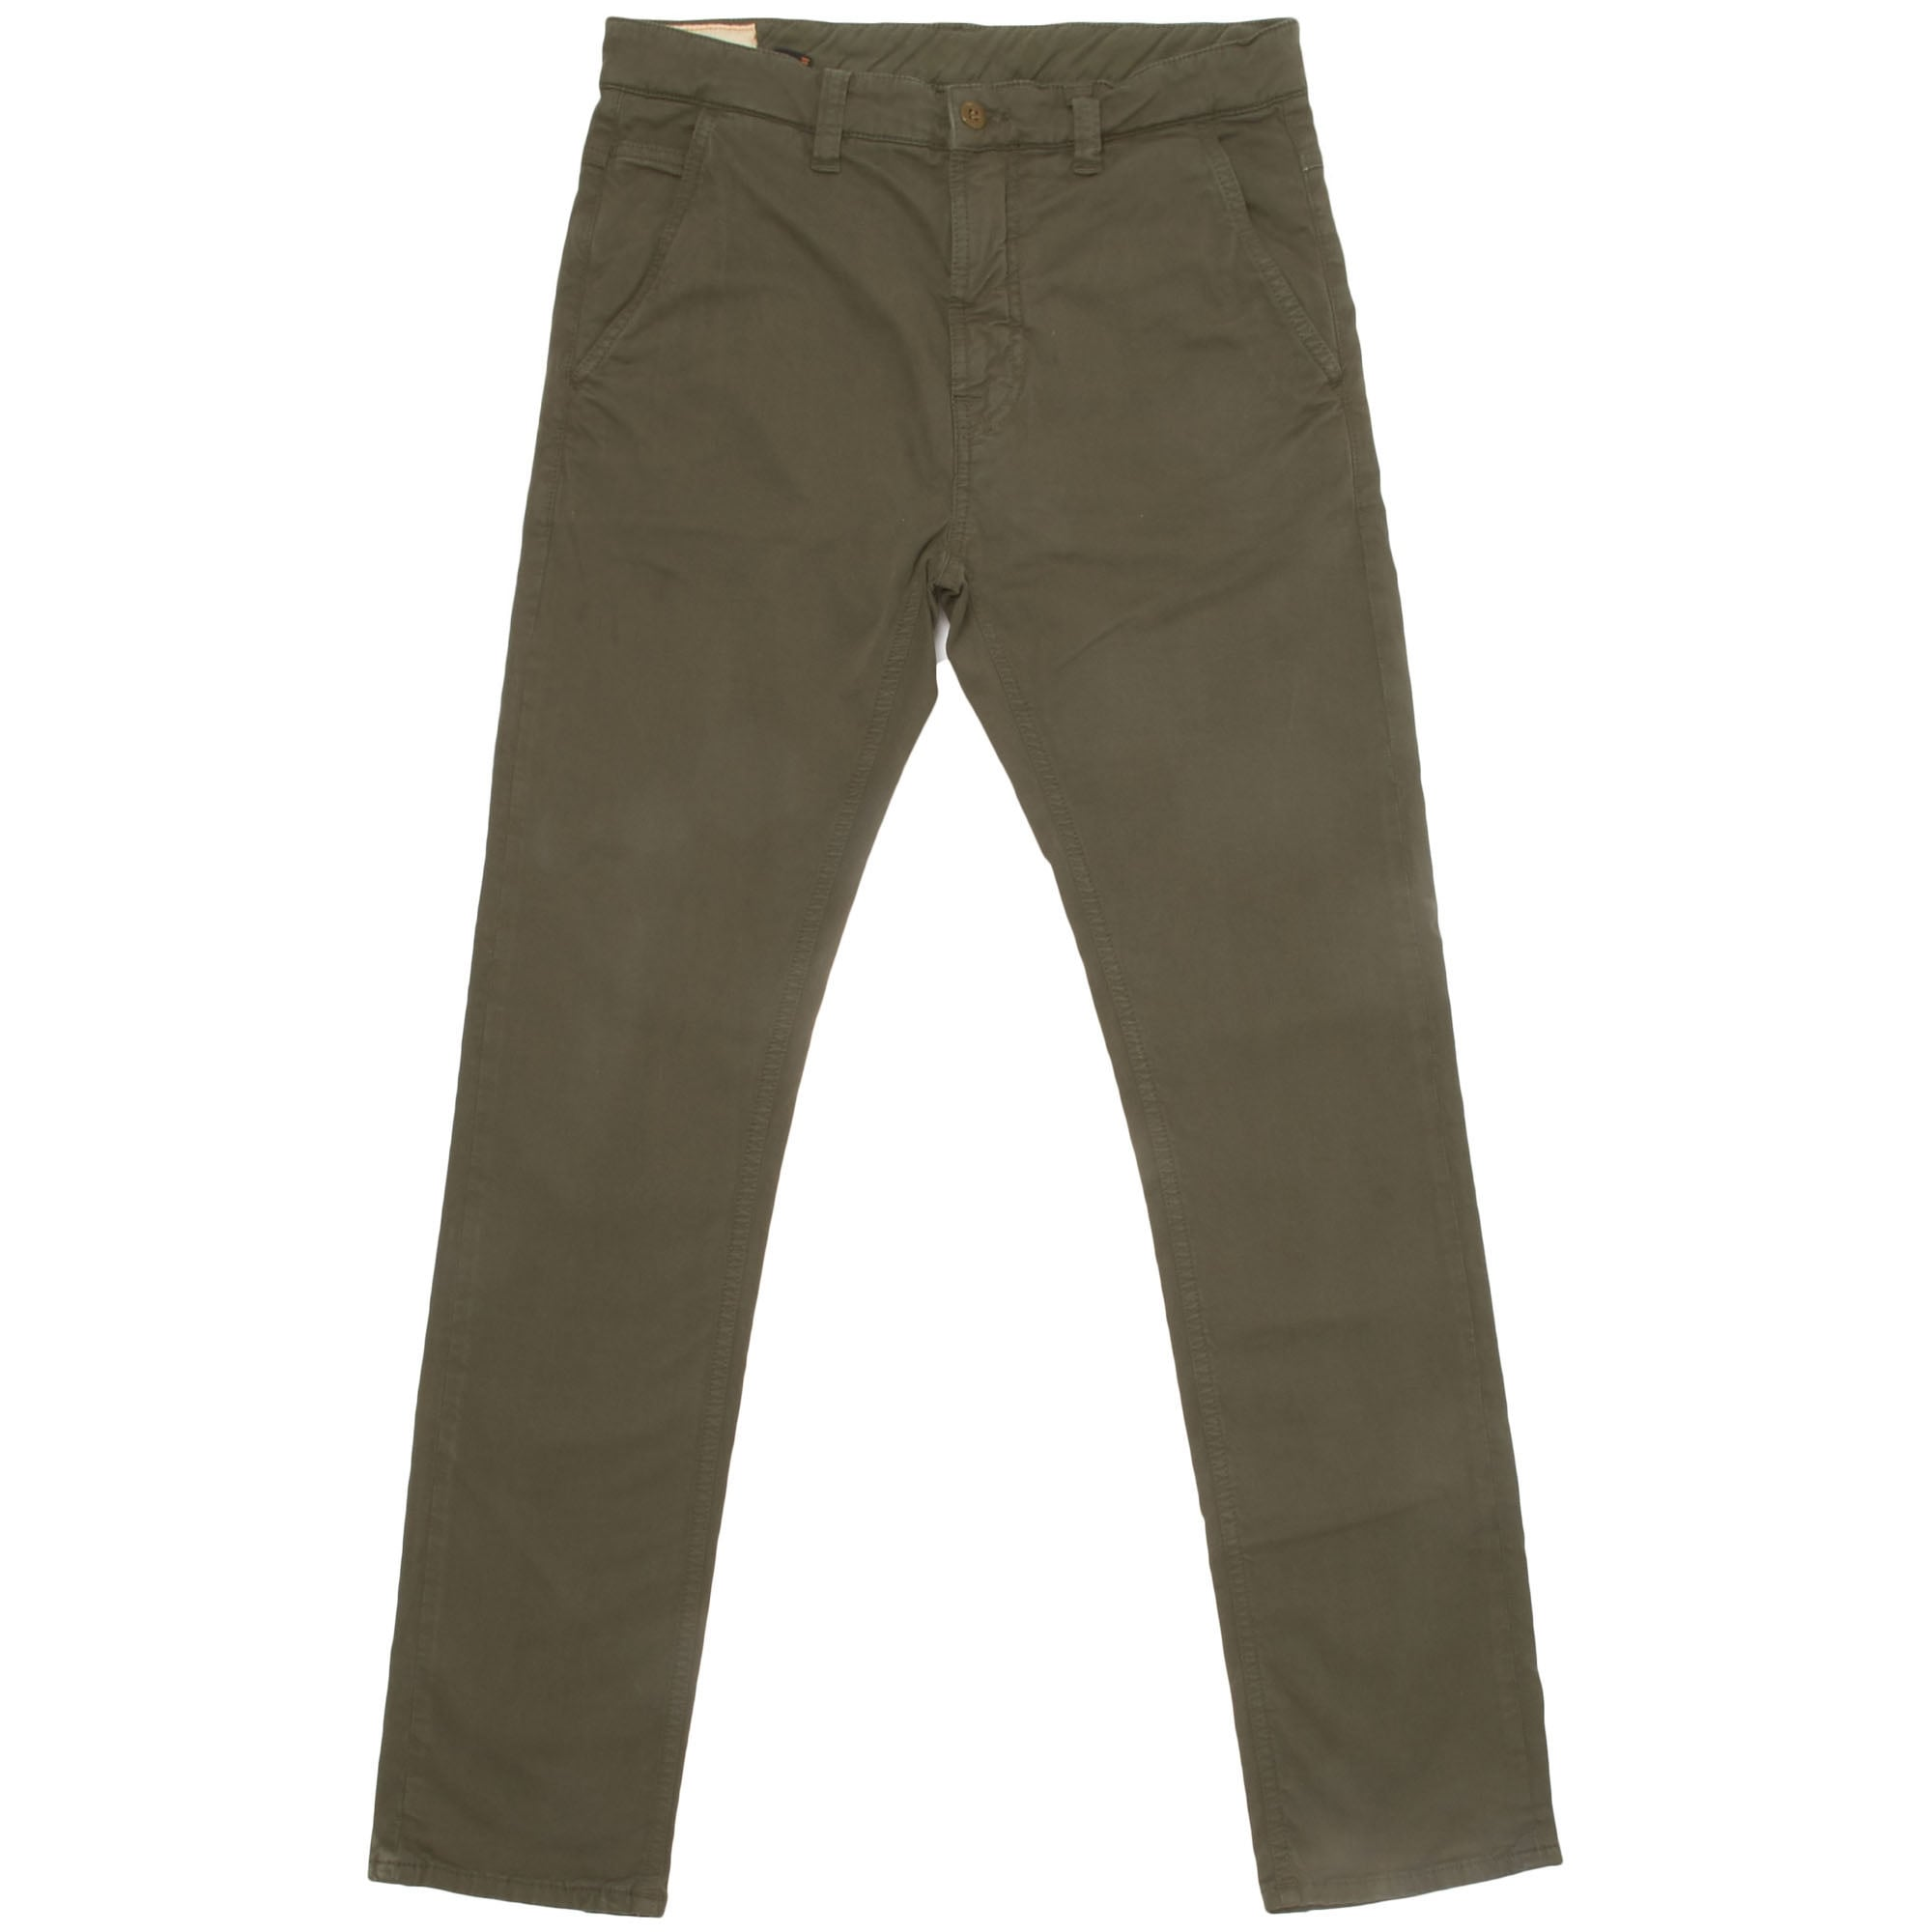 Russell Work Pants Green W36 L32